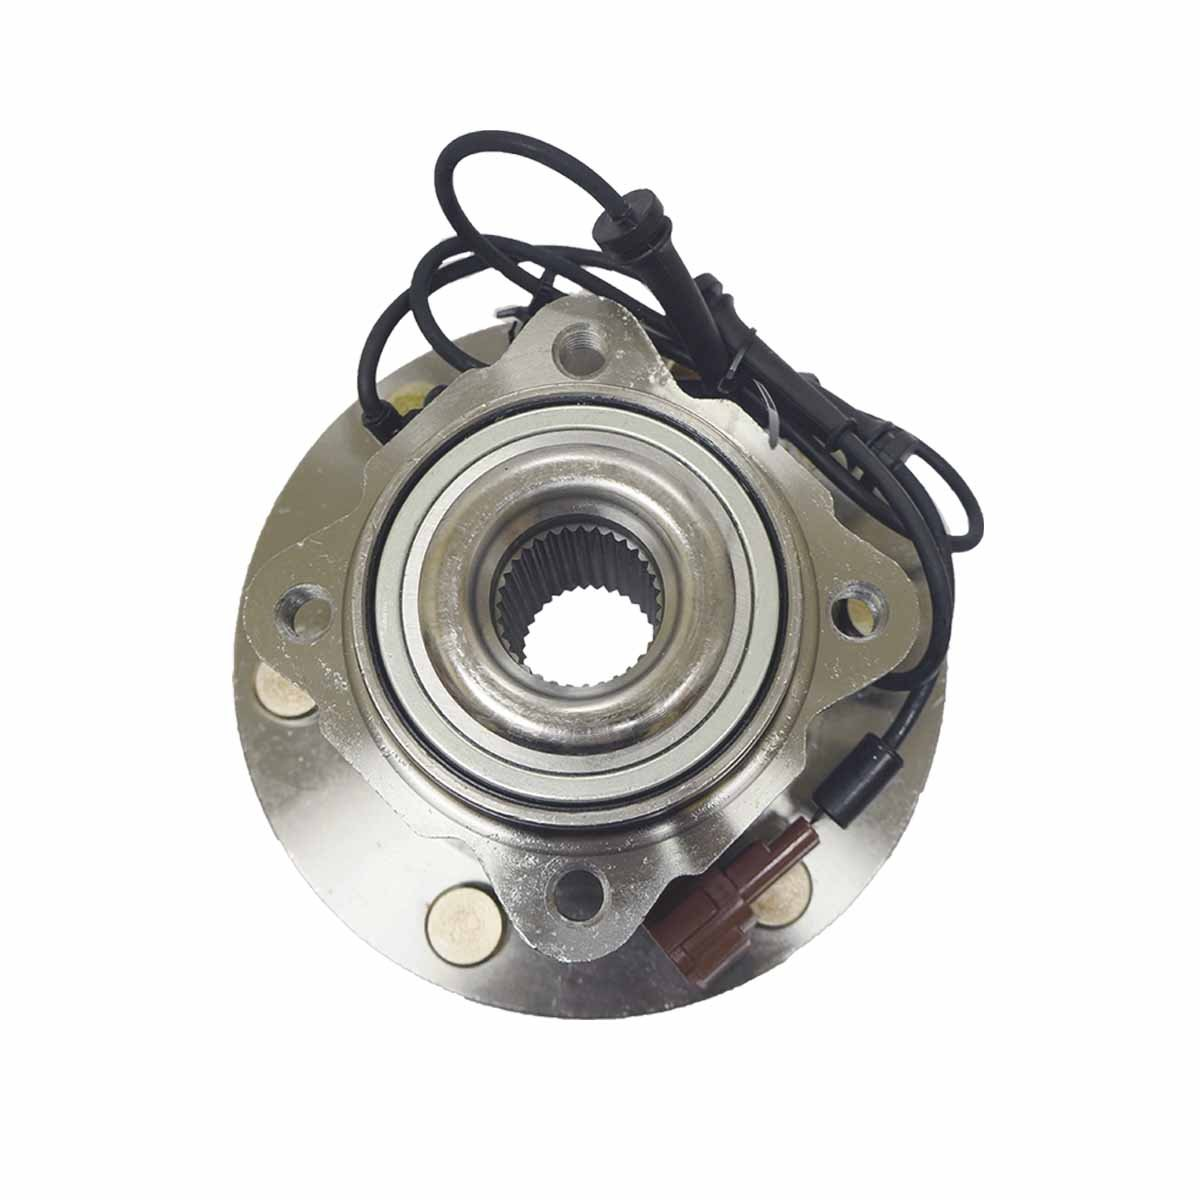 04 PATHFINDER AF541004 Brand New Wheel Bearing Hub Assembly Rear Left Or Right Fit 04-10 INFINITI QX56 05-12 NISSAN ARMADA